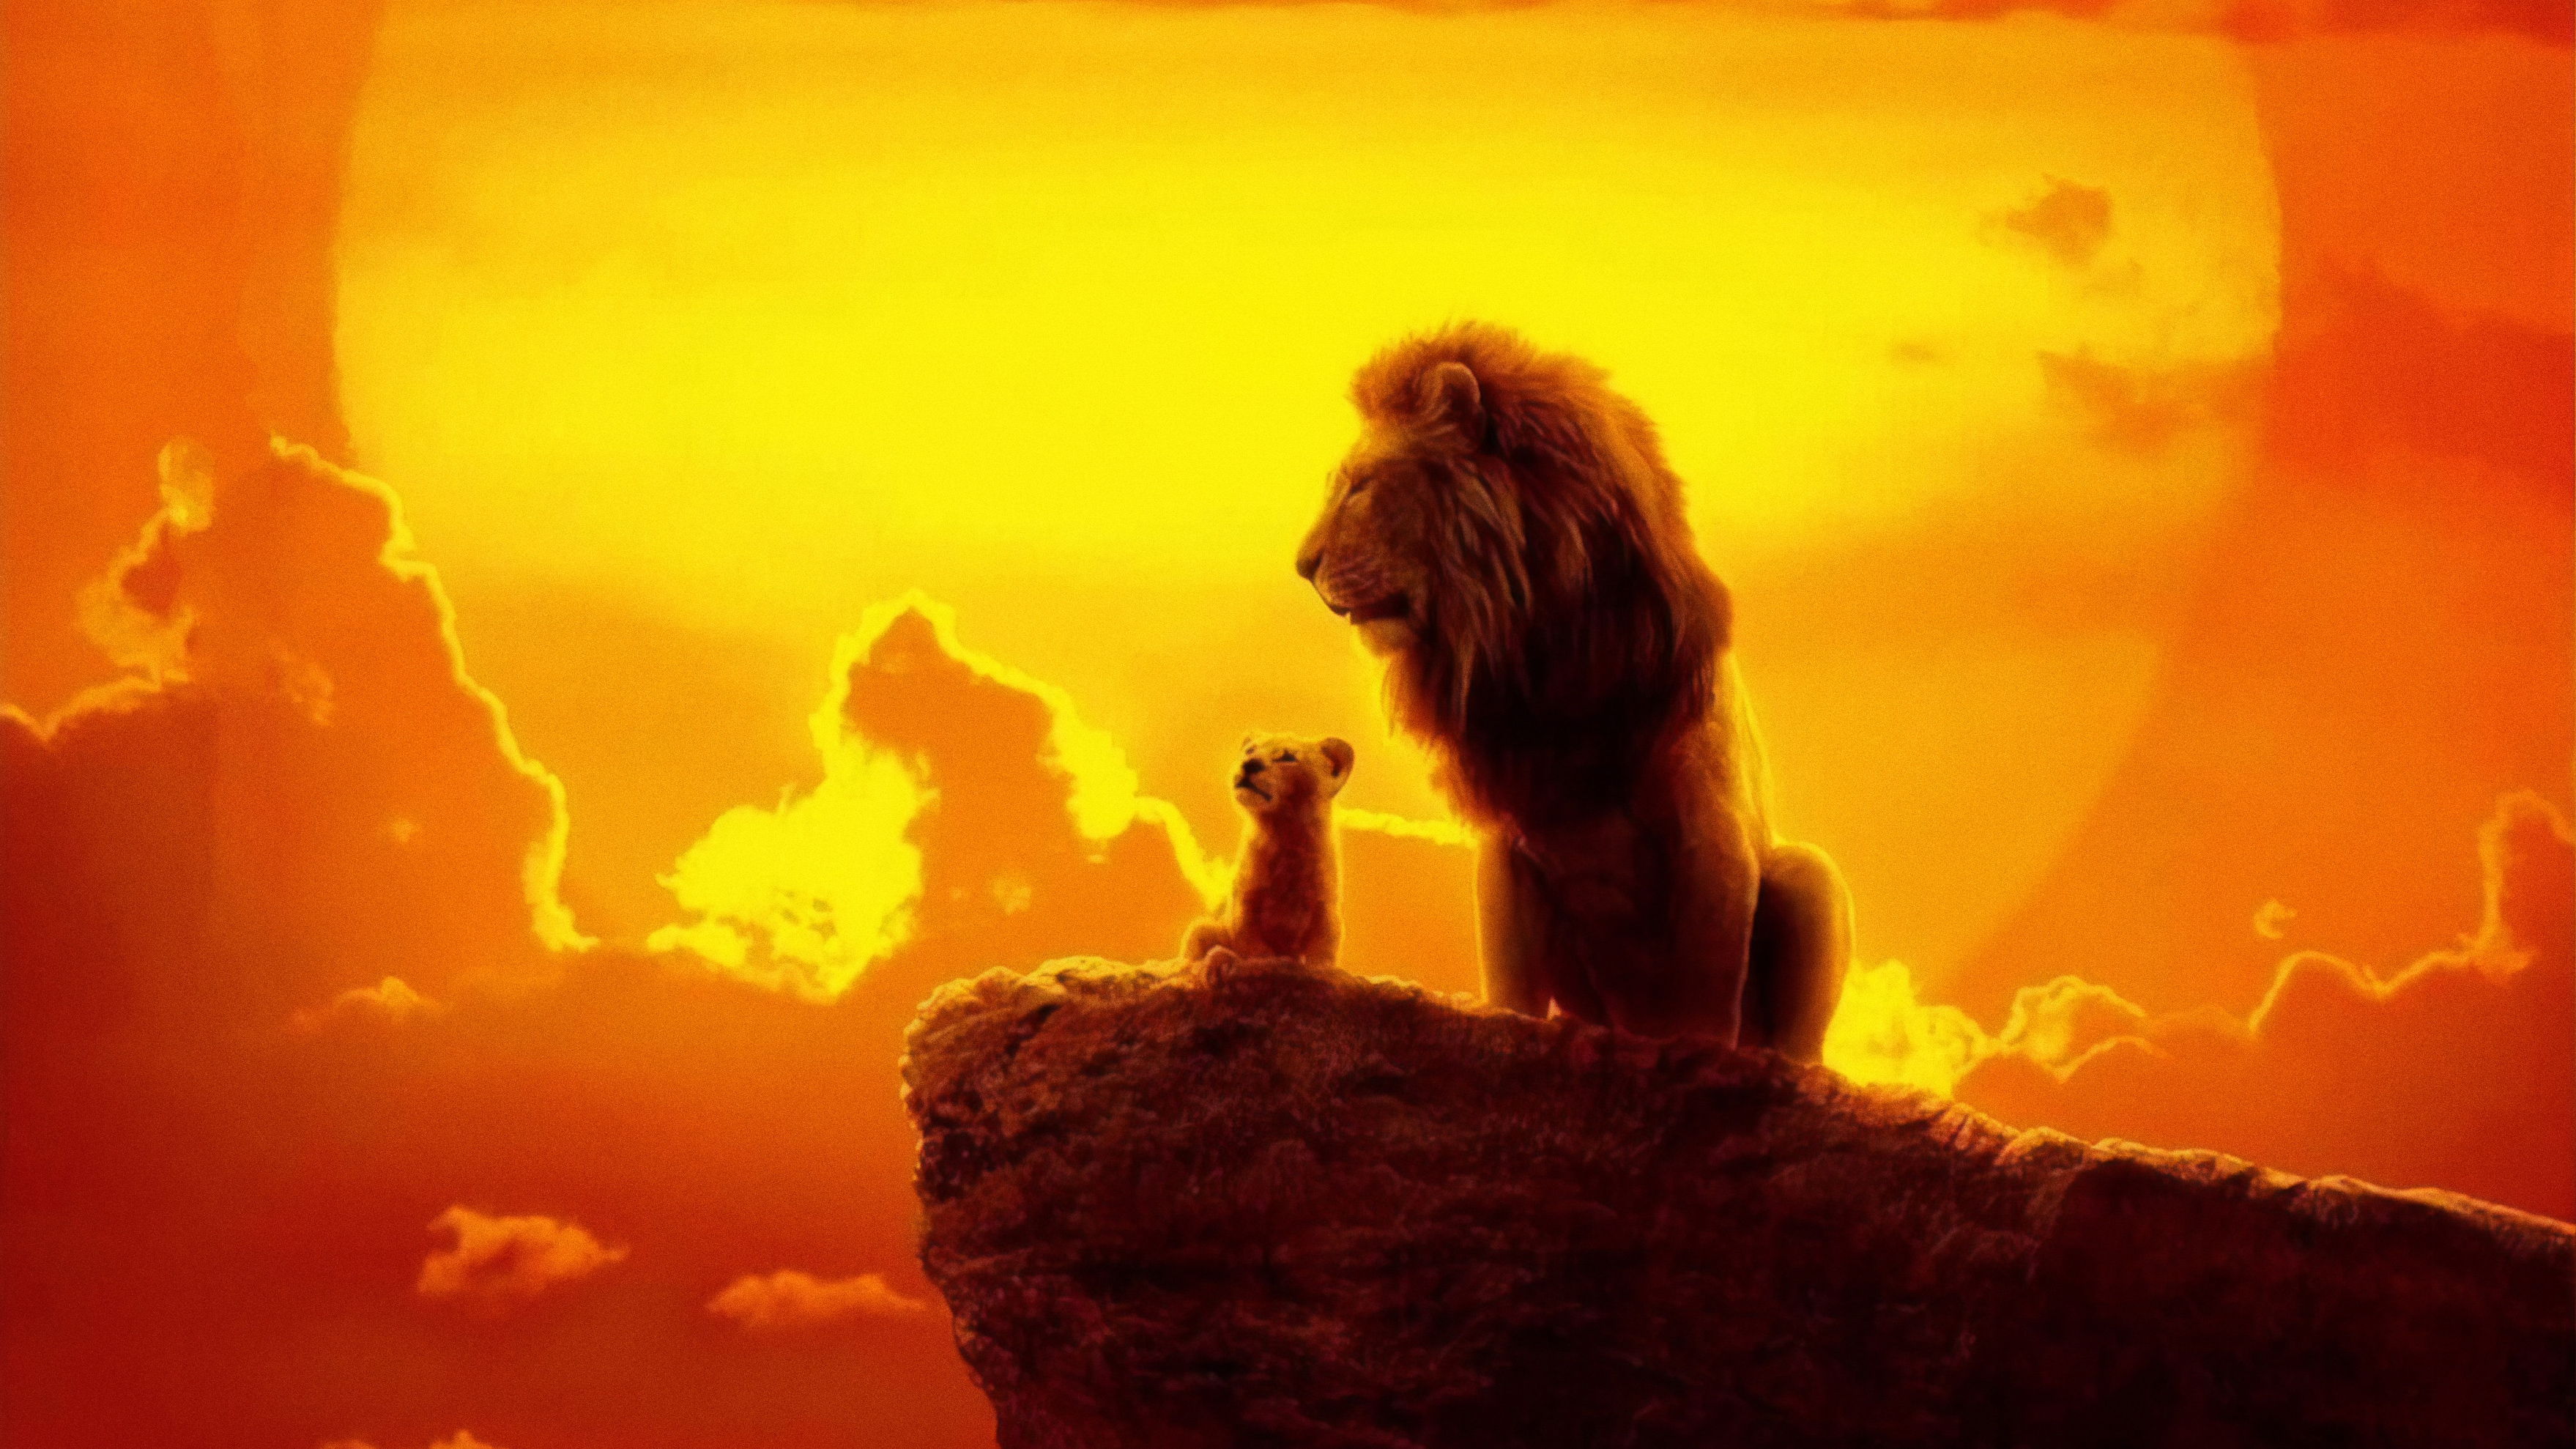 The lion king 2019 4k hd movies 4k wallpapers images - Lion 4k wallpaper for mobile ...